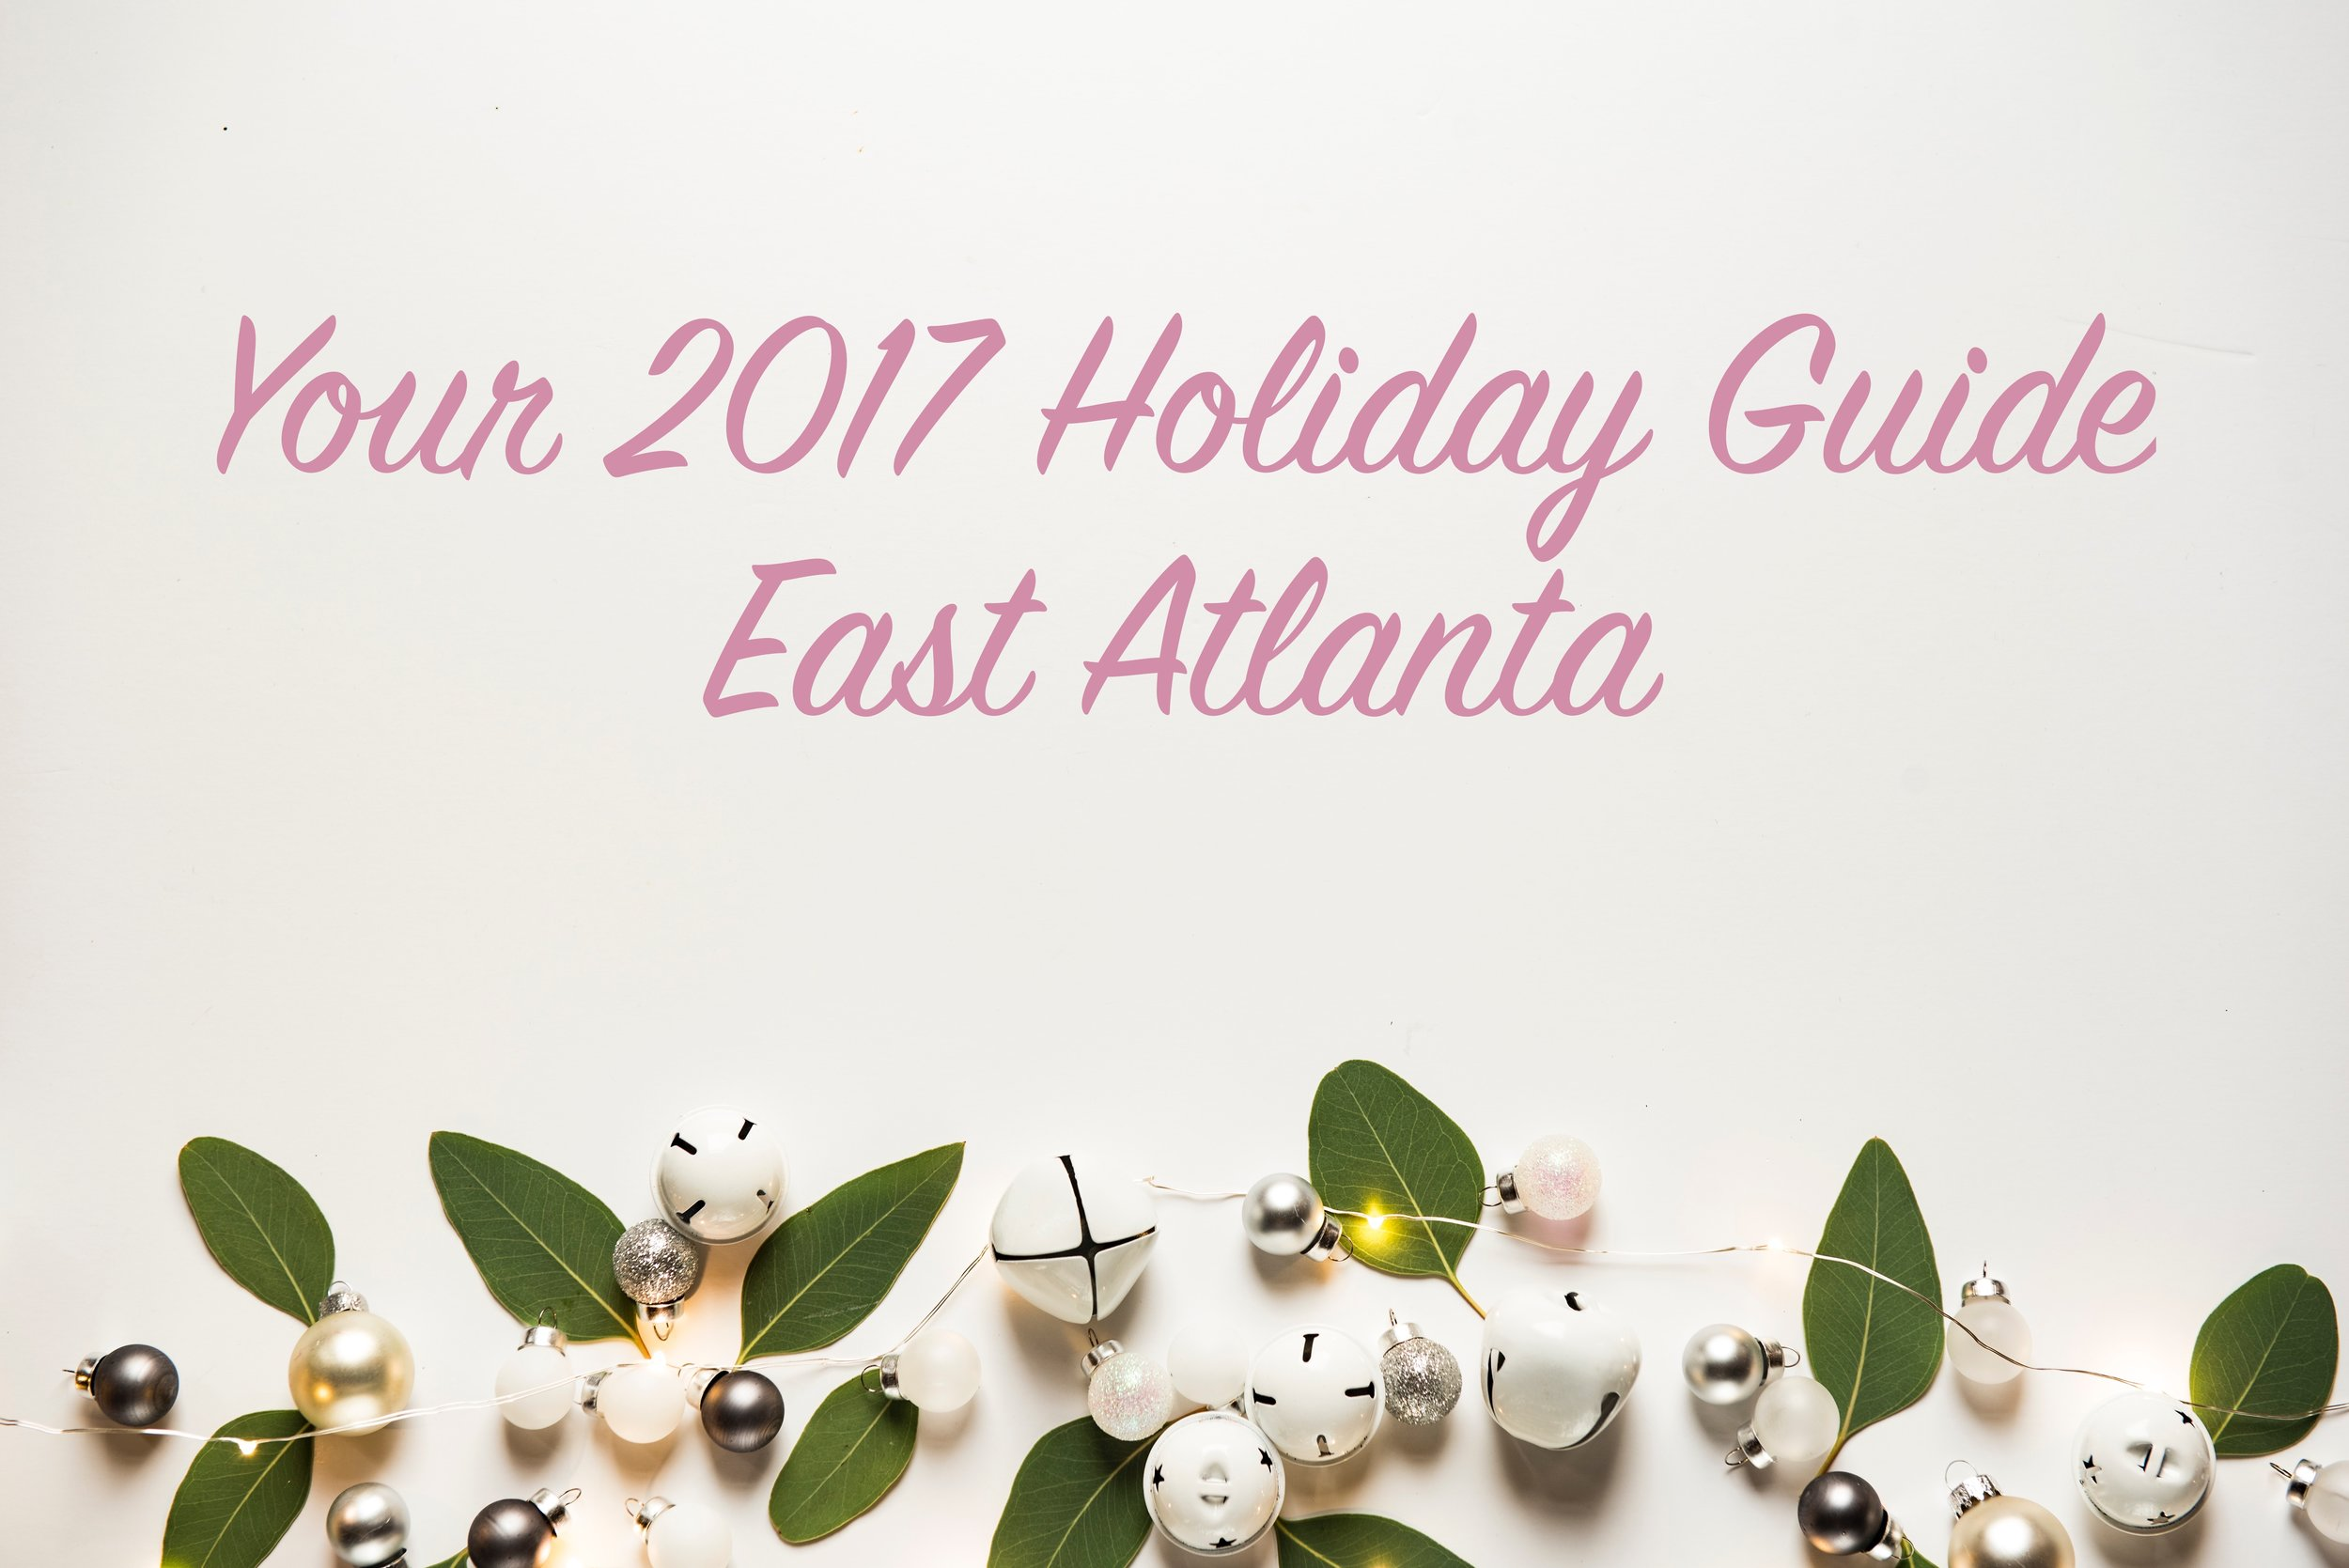 Your guide to the 2017 holiday events in East Atlanta